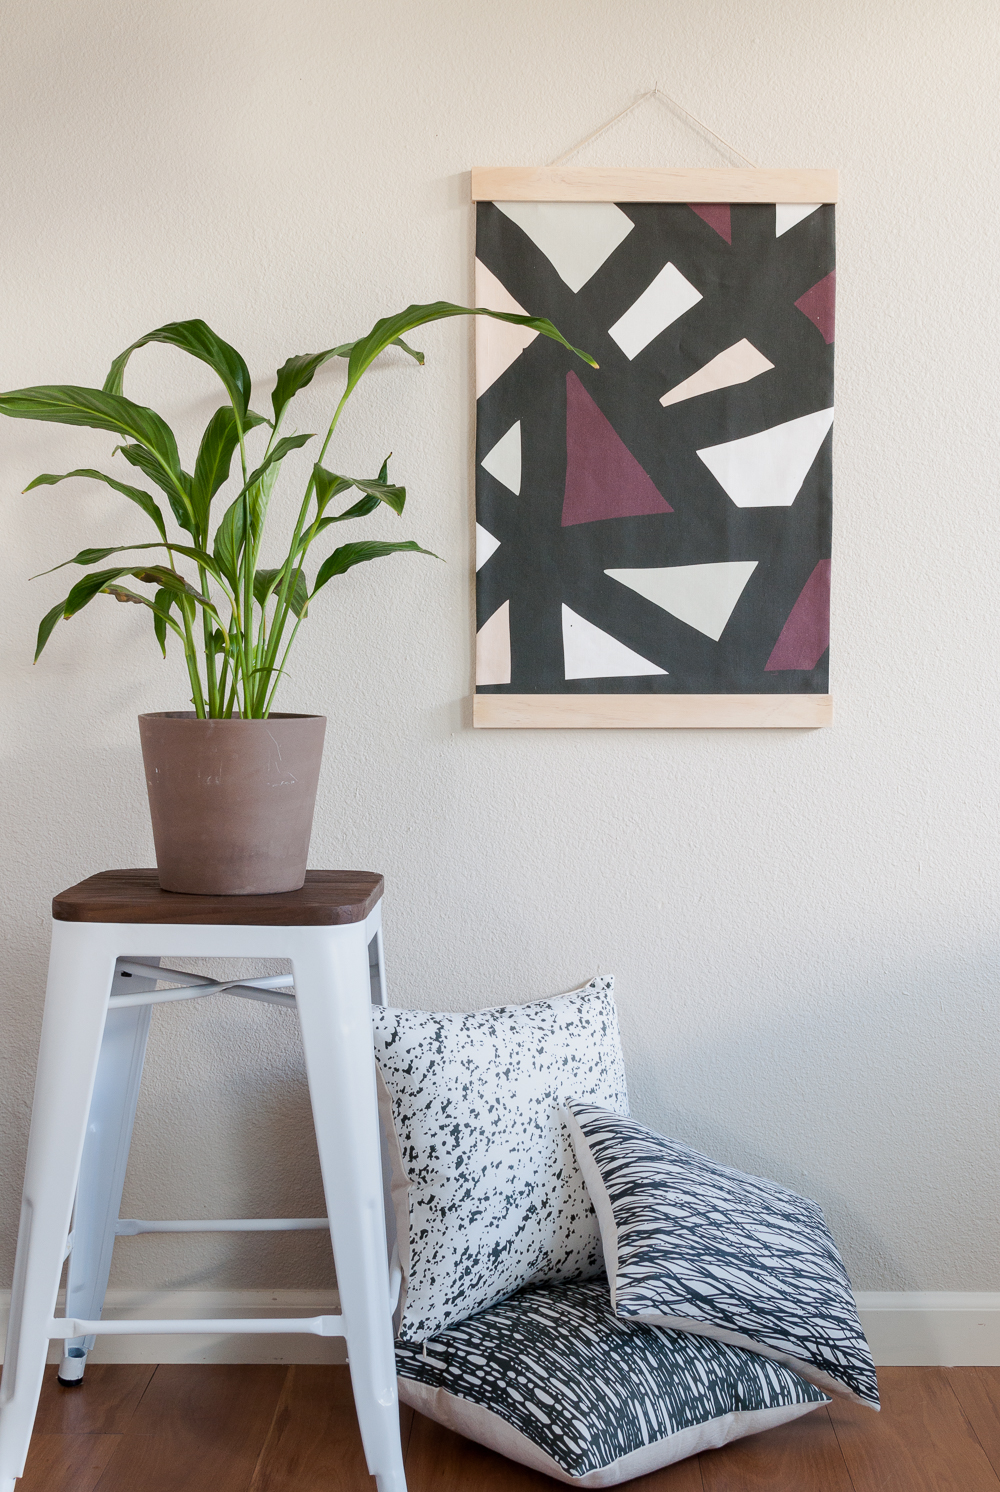 Abstract Geometric Fabric Wall Hanging